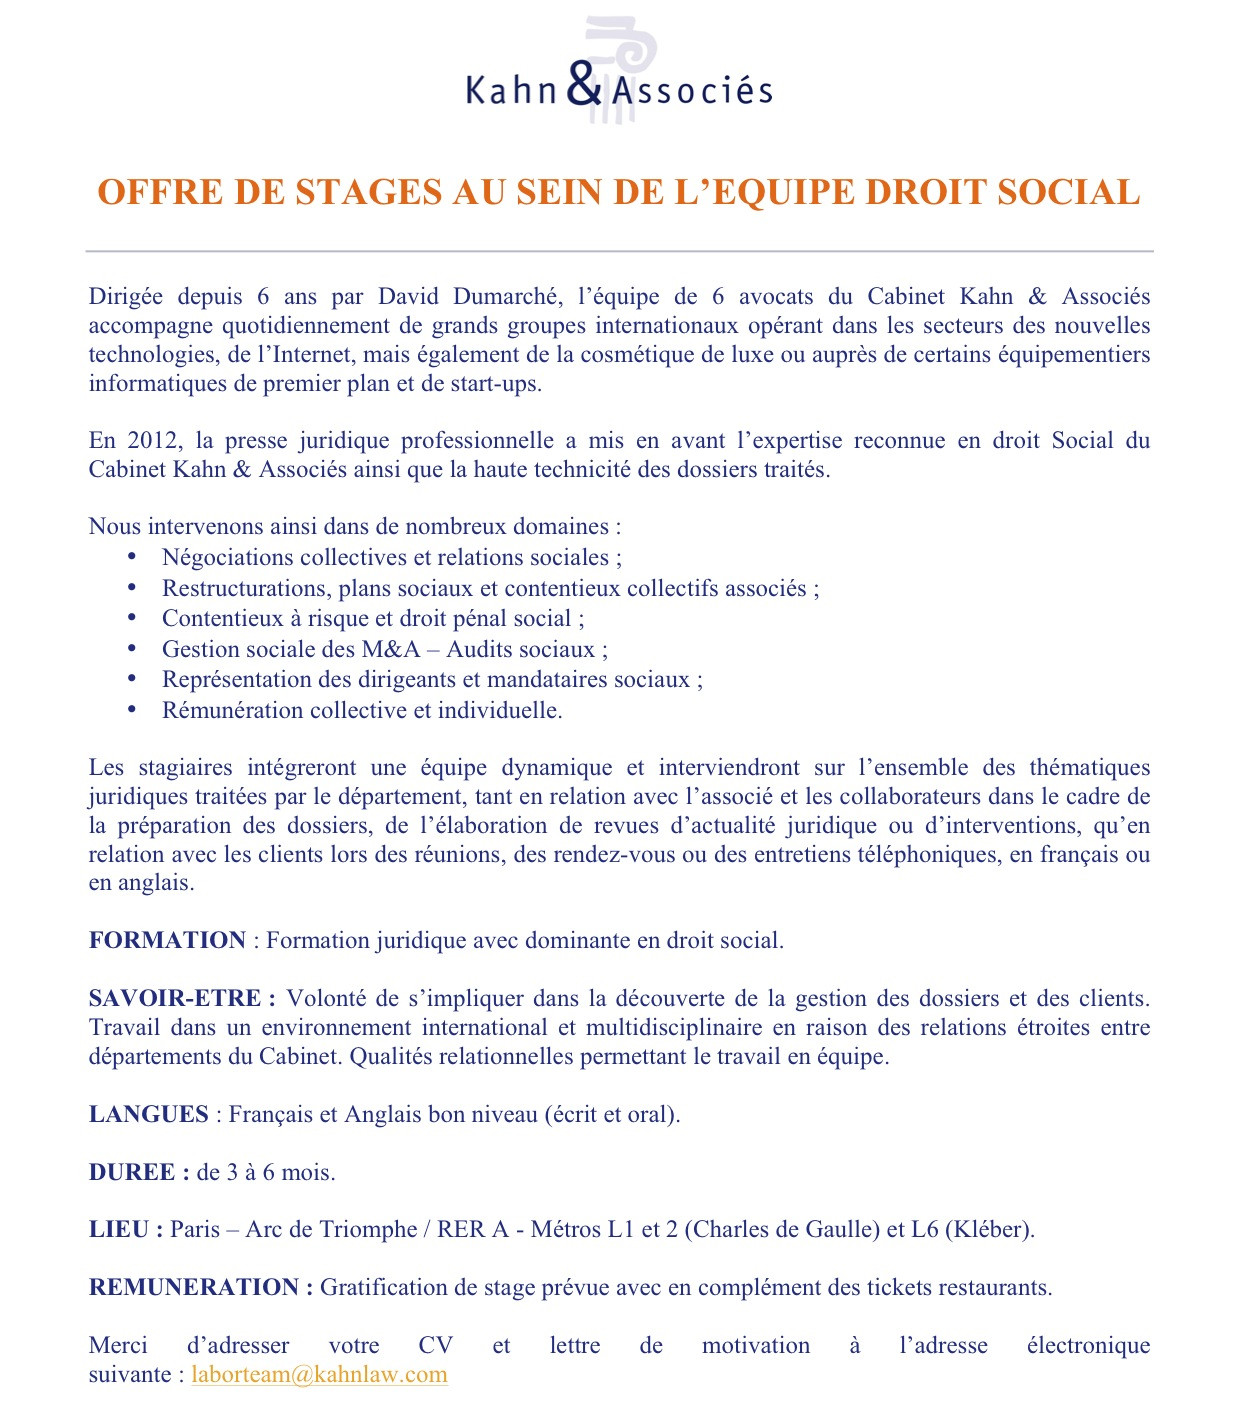 lettre de motivation master 2 droit priv u00e9